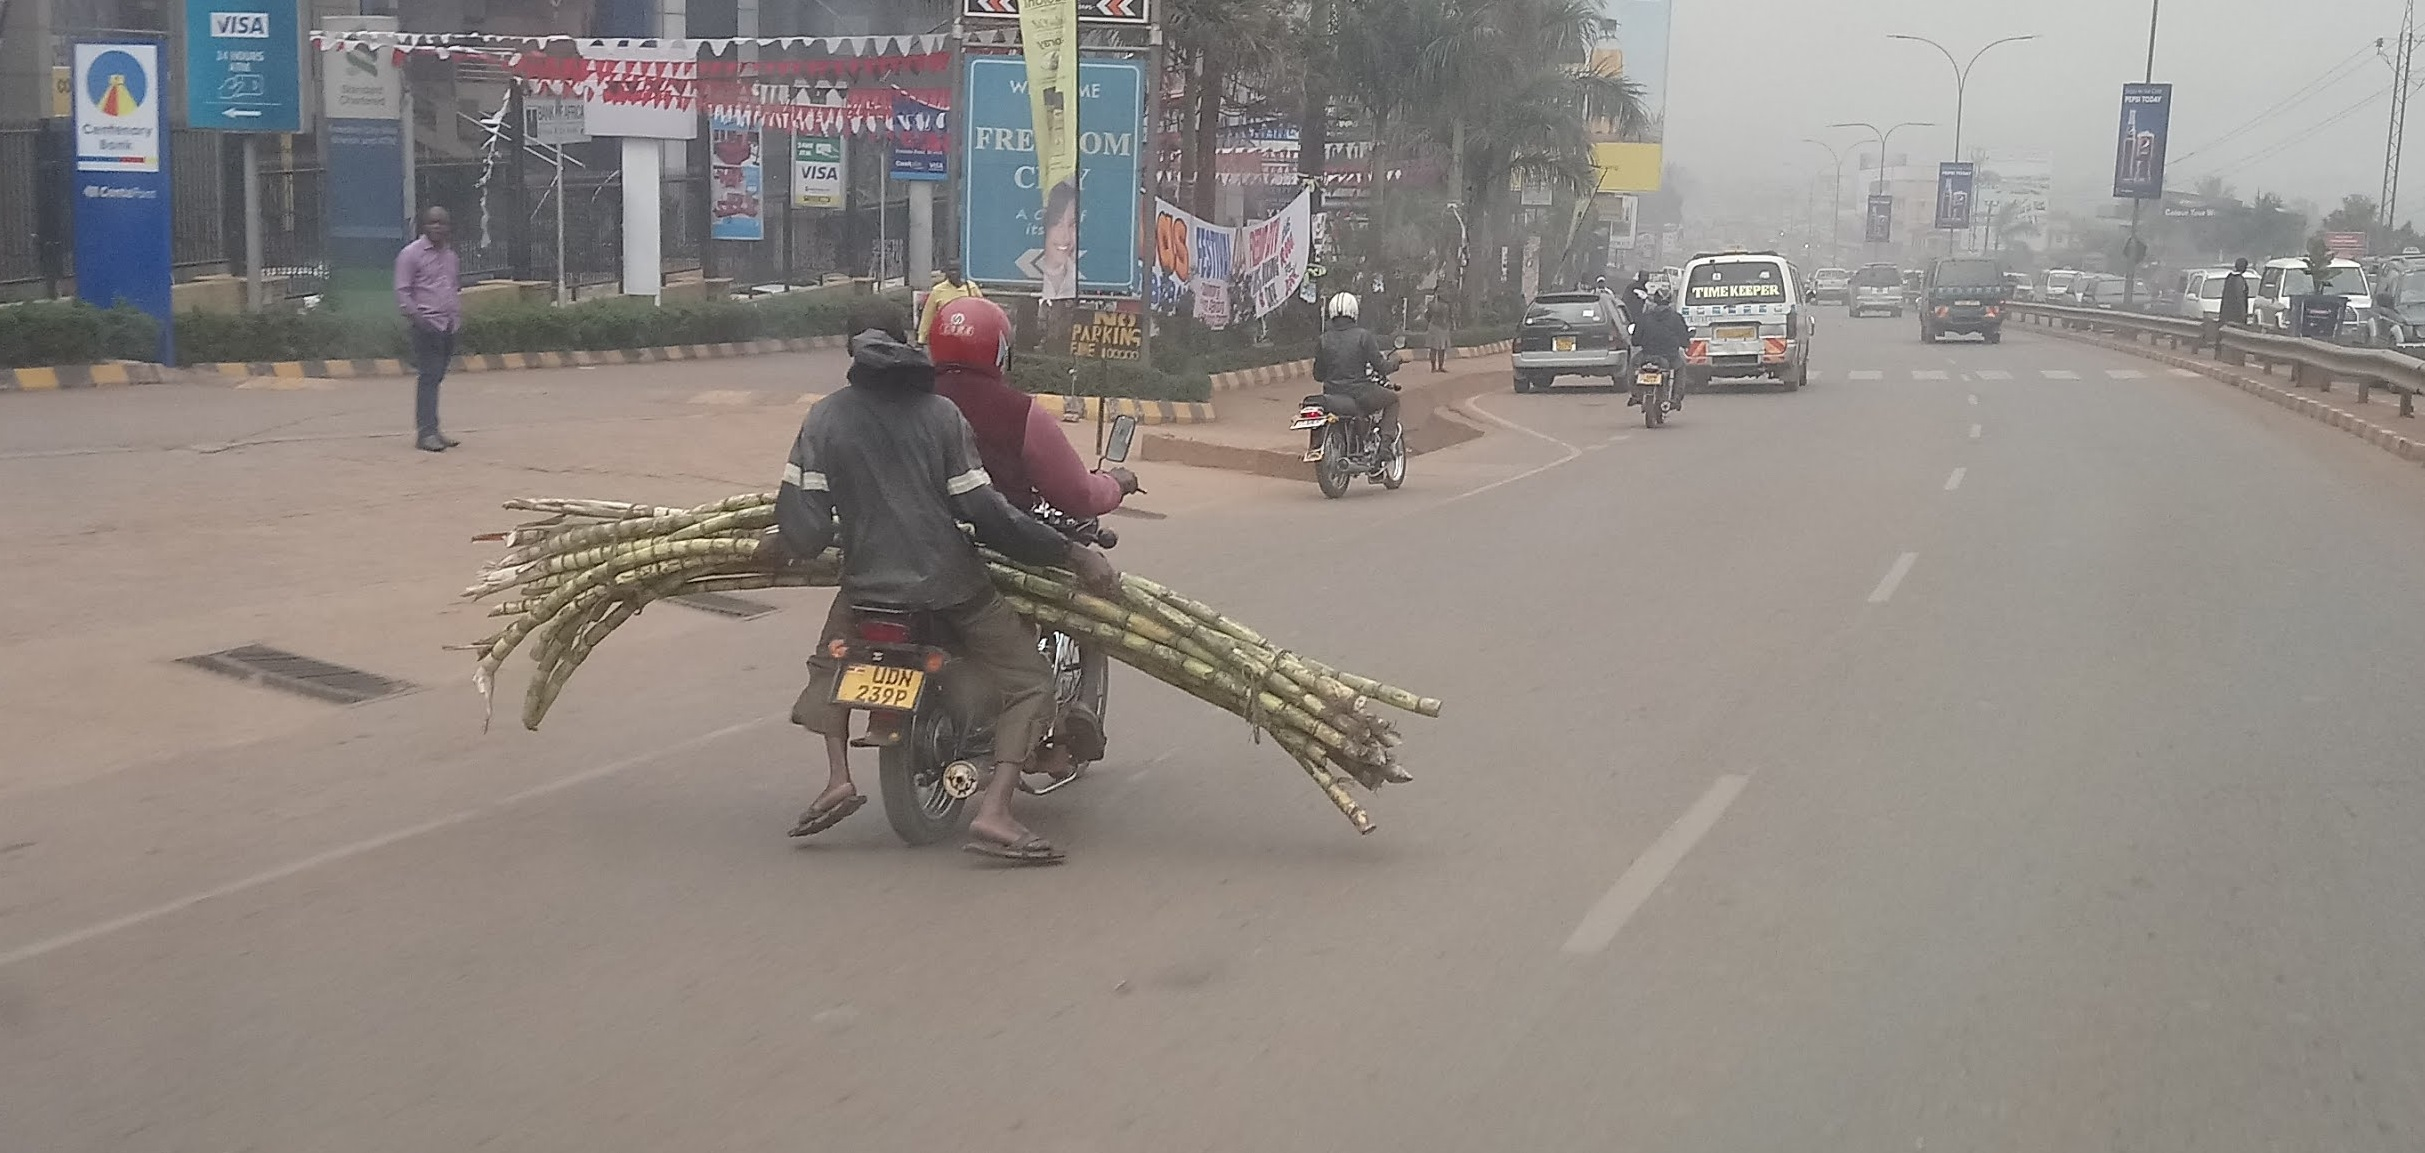 Sugar Cane on a Boda Boda in Uganda